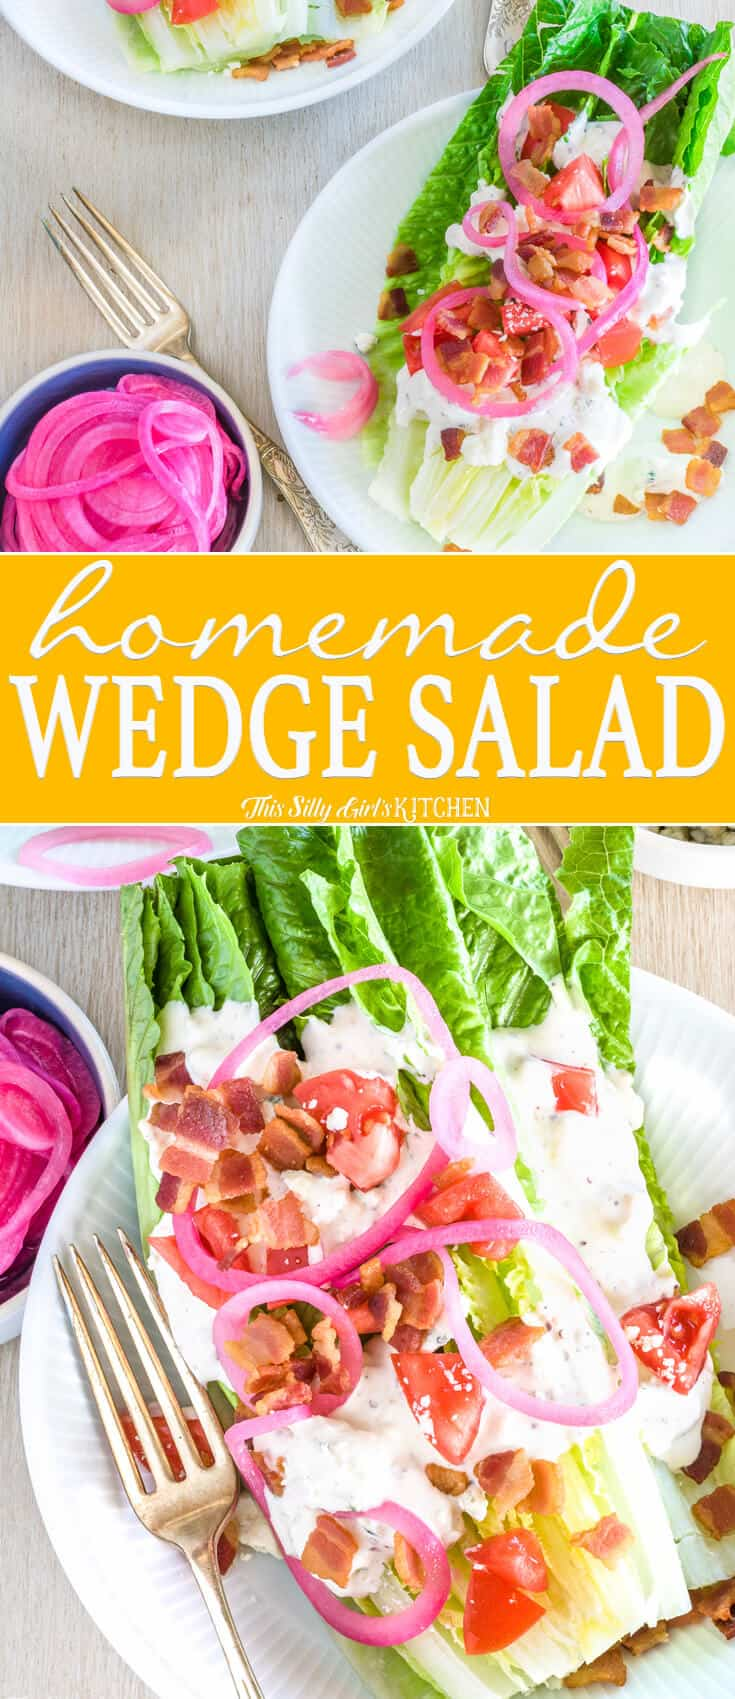 Romaine Wedge Salad collage image with title in center